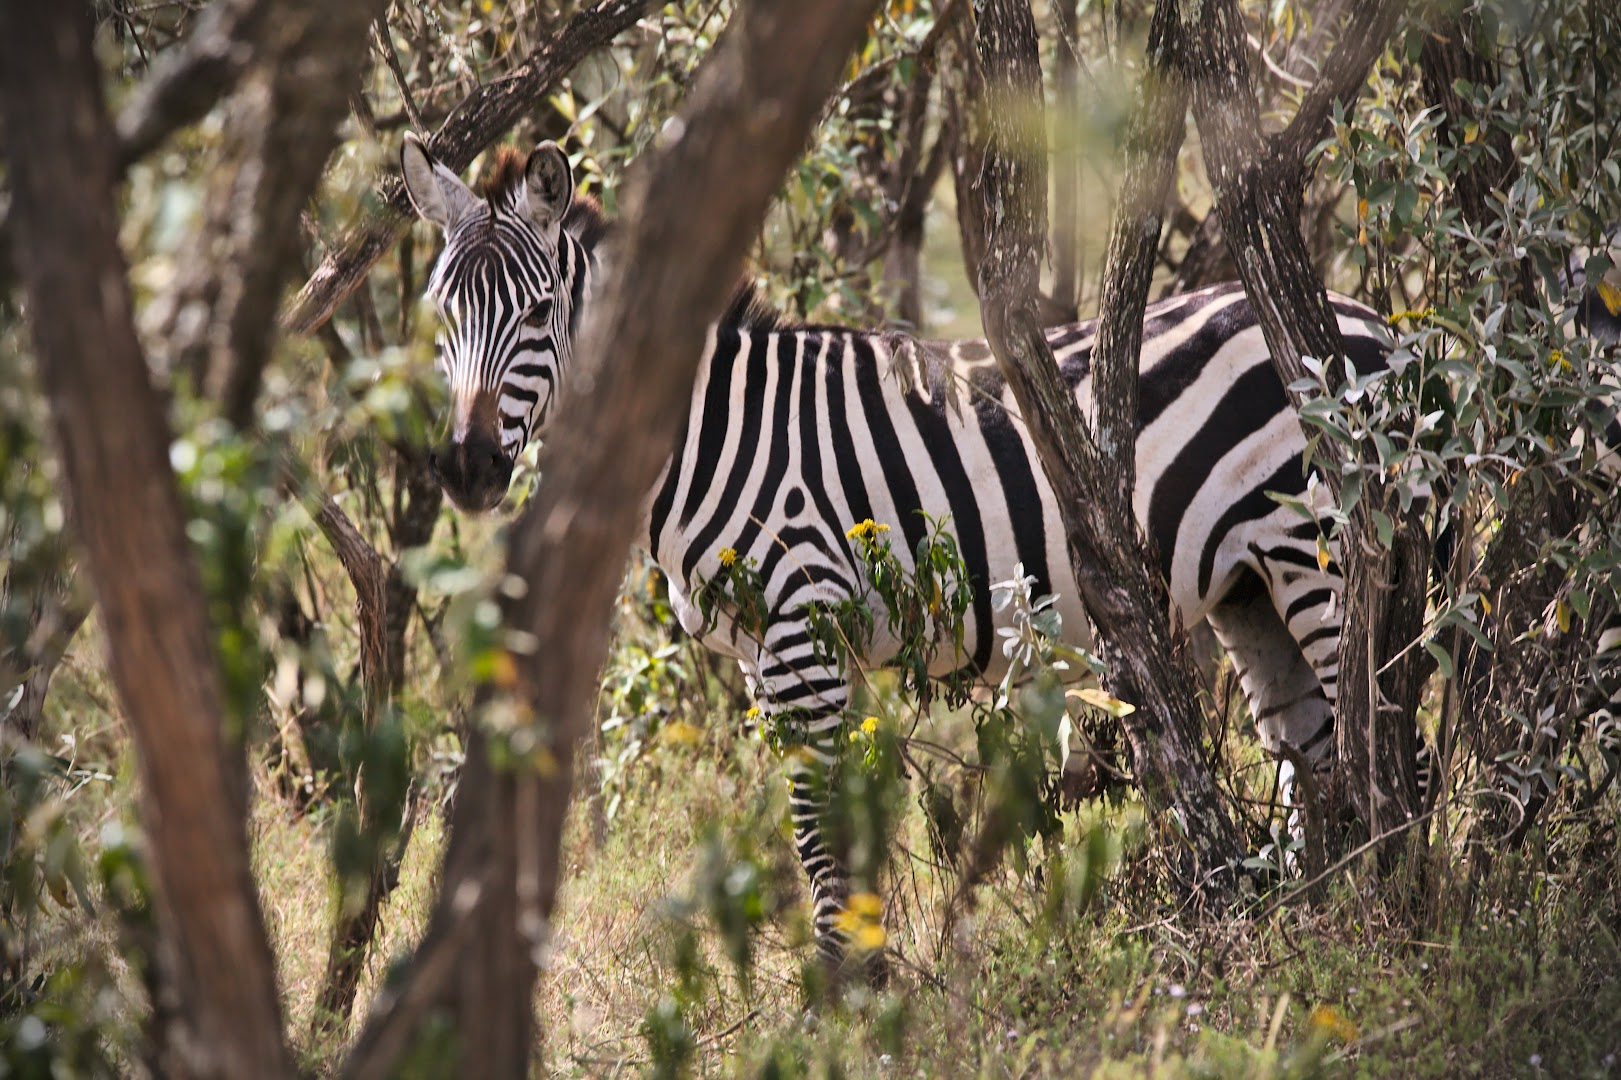 Hunting for zebras